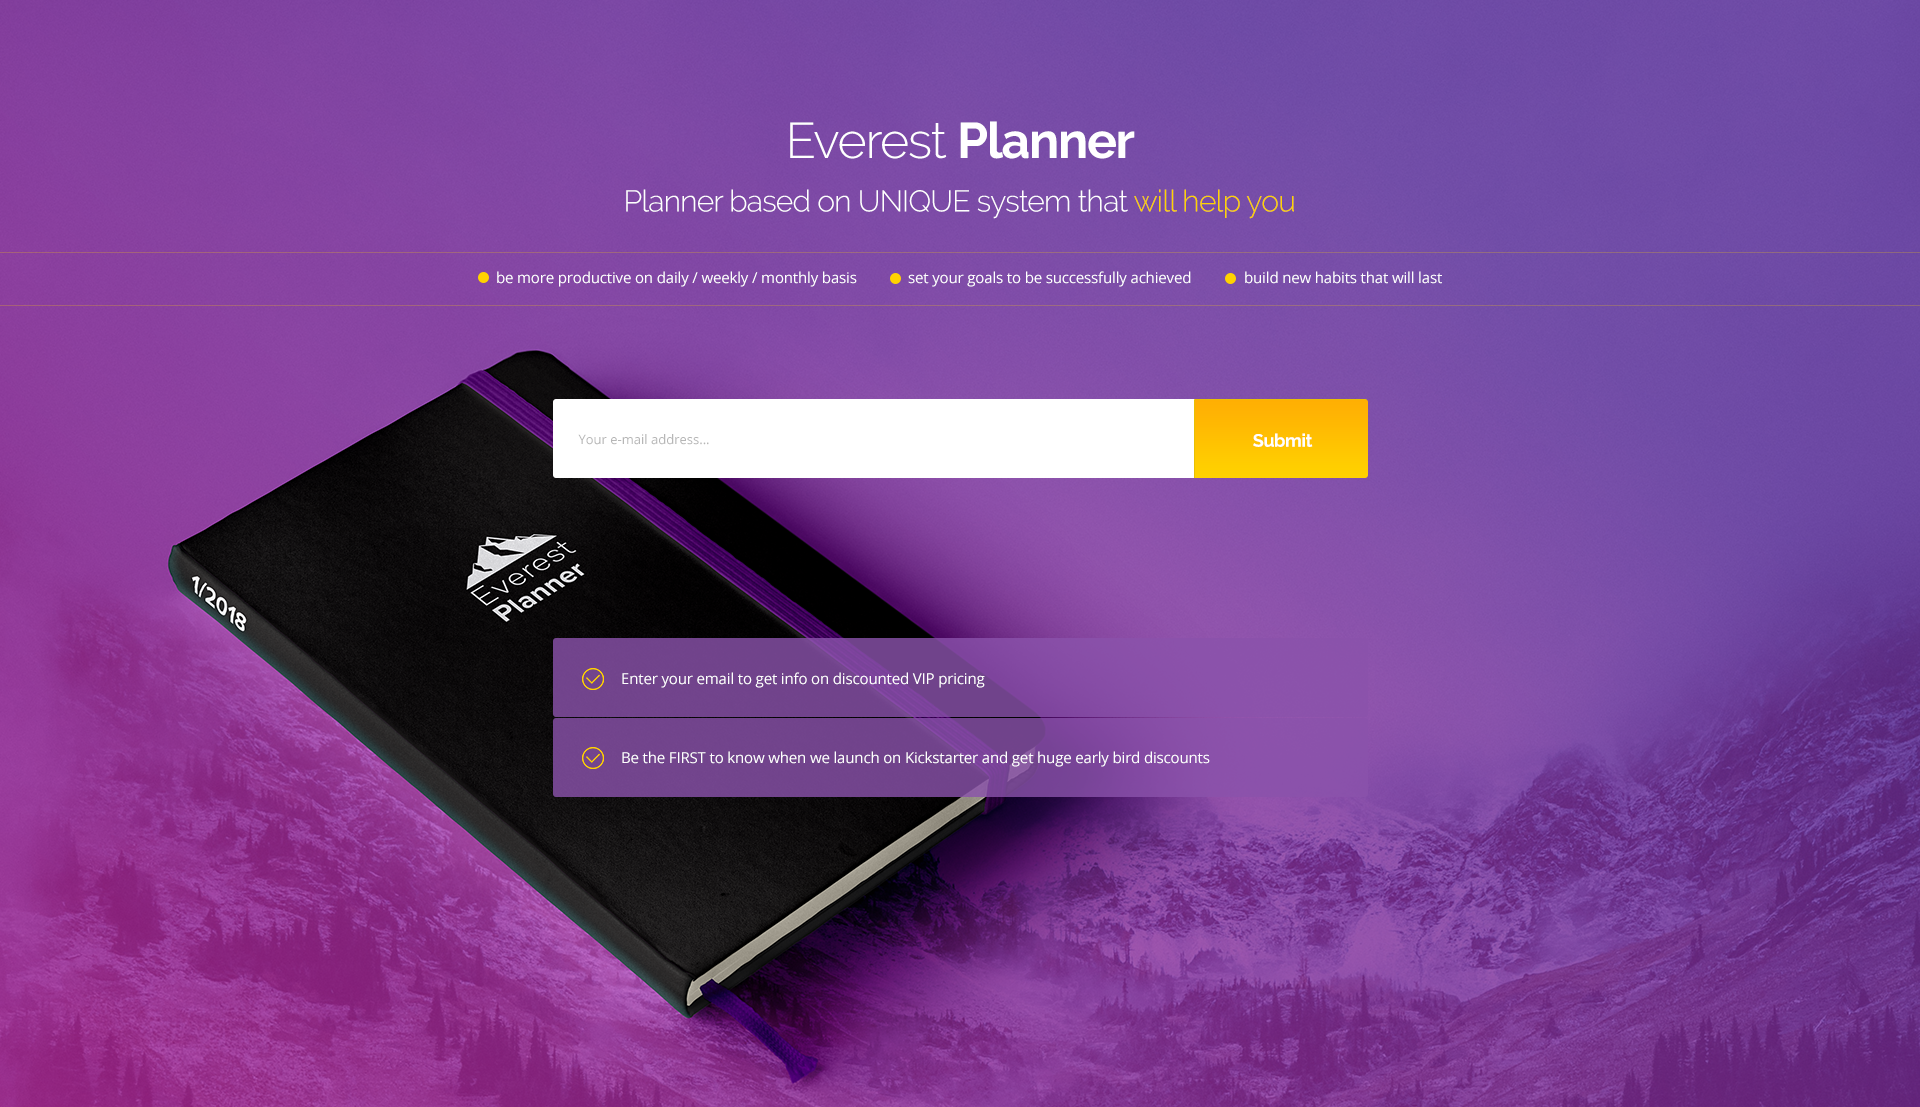 Evereste Planner Campaign Website